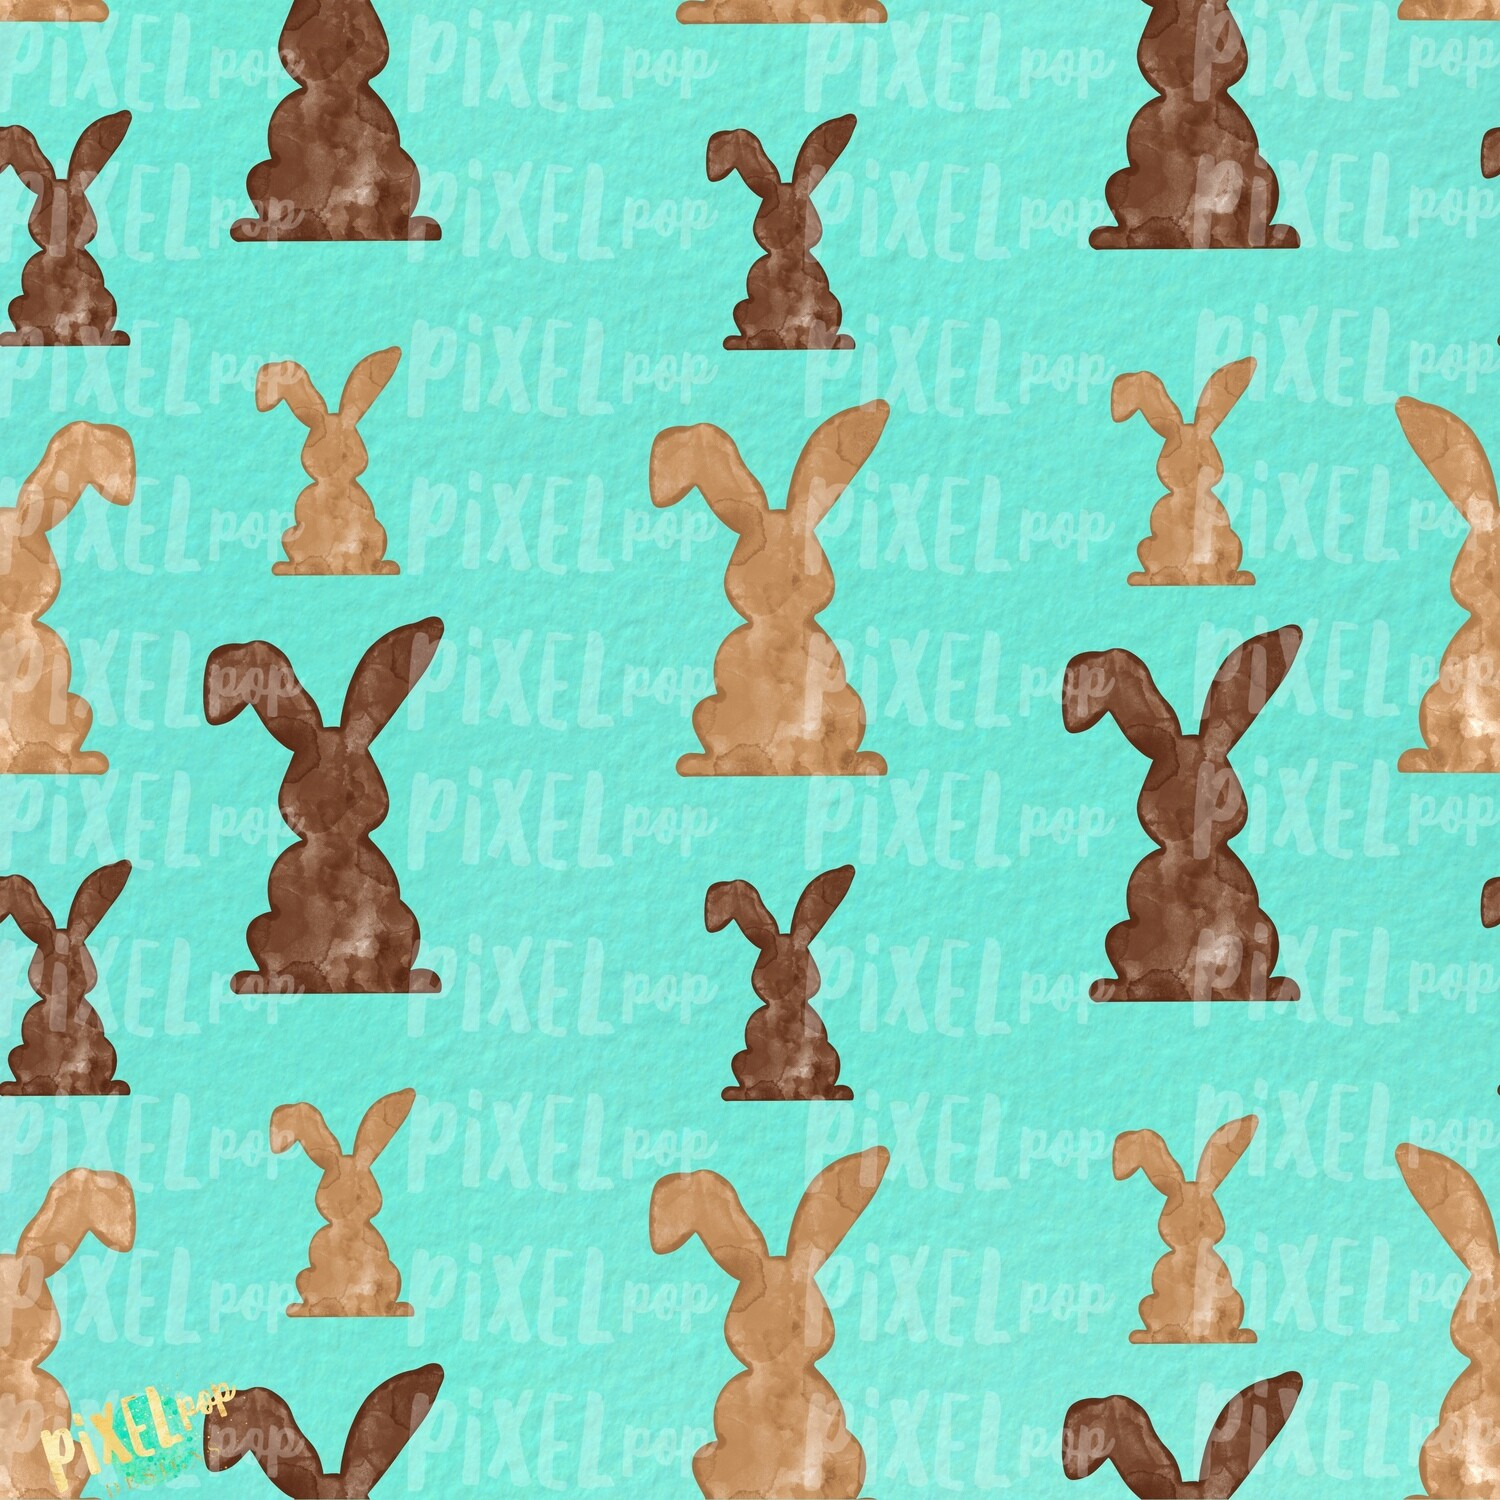 Bunnies Galore Mint Easter Digital Paper Sublimation PNG | Hand Painted Art | Sublimation PNG | Digital Download | Digital Scrapbooking Paper